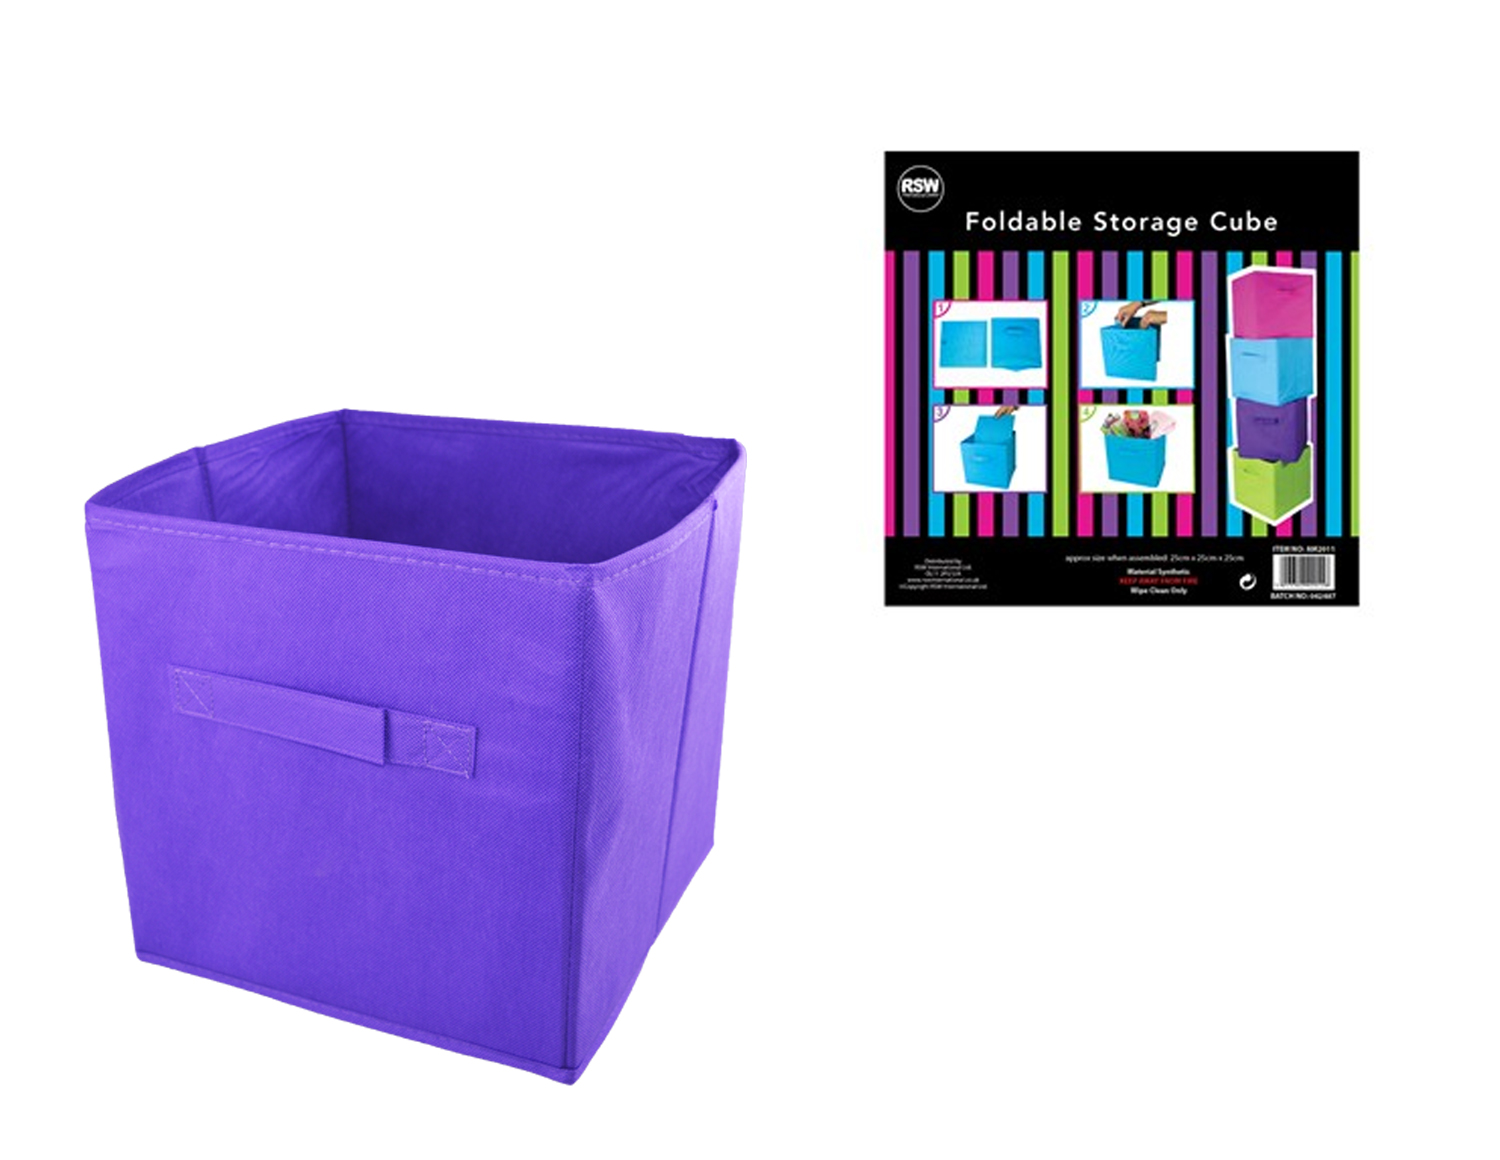 Folding Storage Cube Space Saver Tidy Home Bedroom Playroom